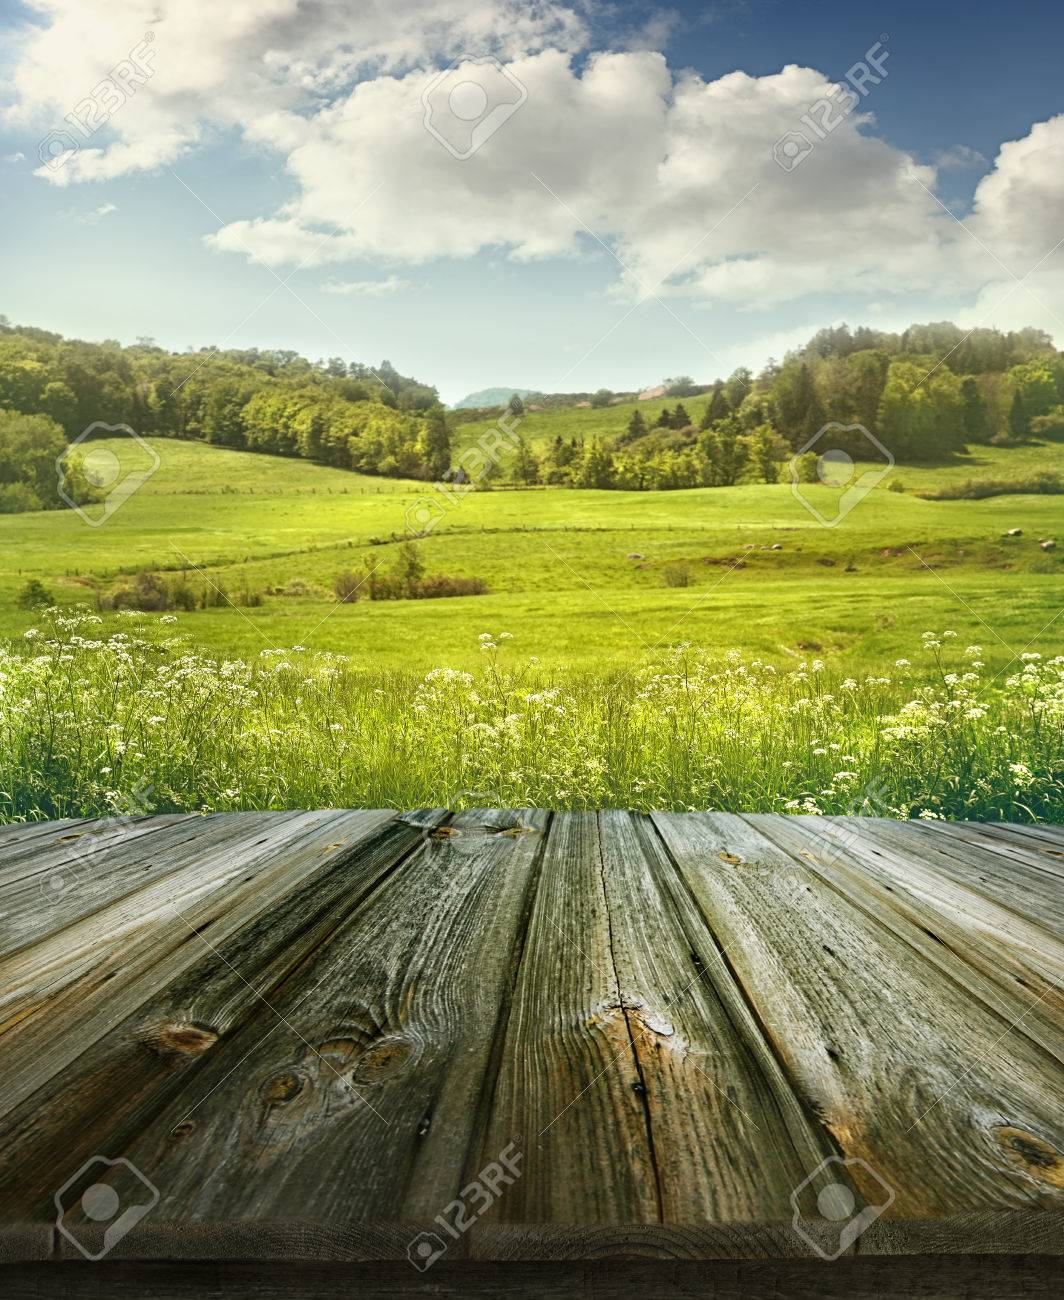 Summer Pastoral Background With Rough Wooden Planks Stock Photo 1064x1300